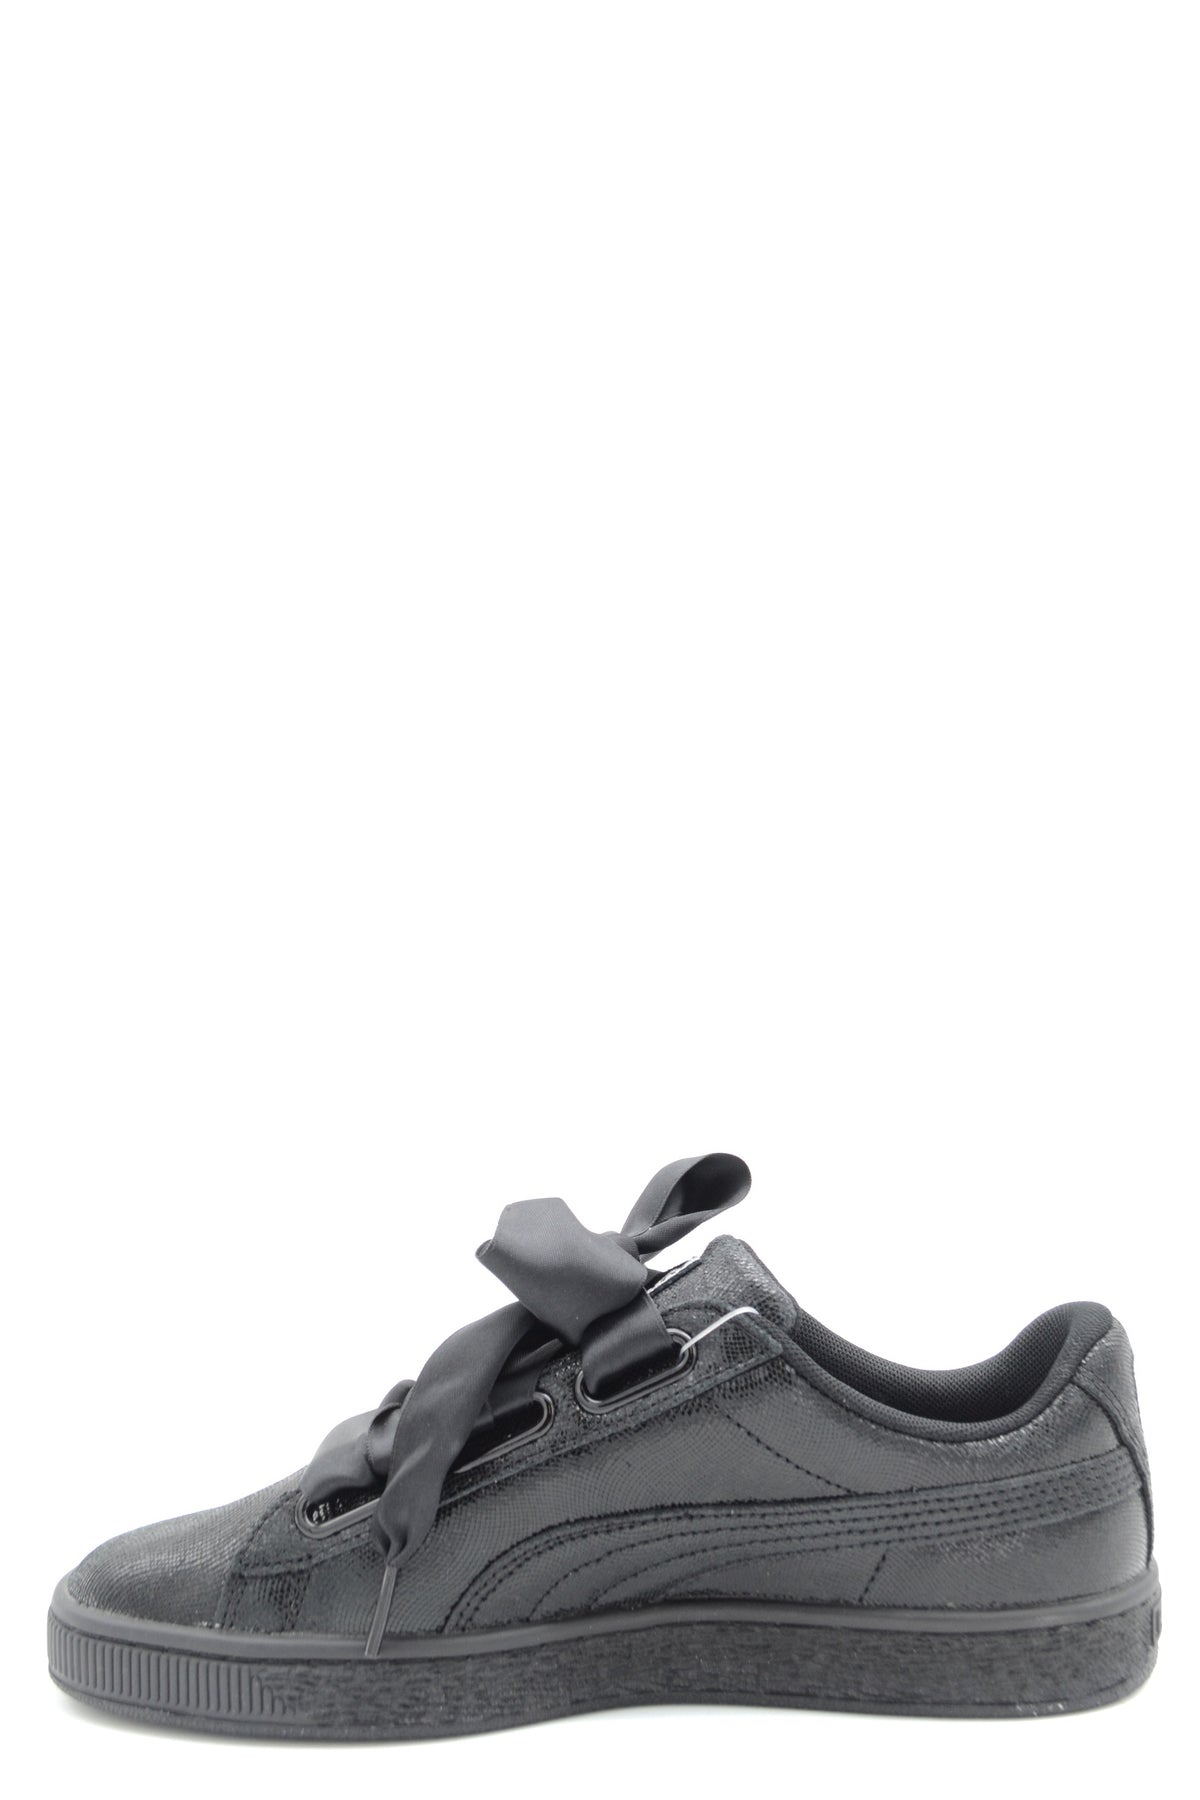 Shoes Puma-Sneakers - WOMAN-Product Details Type Of Accessory: ShoesSeason: Spring / SummerTerms: New With LabelMain Color: BlackGender: WomanMade In: VietnamManufacturer Part Number: 364108 01Size: EuYear: 2018Composition: Tissue 100%-Keyomi-Sook